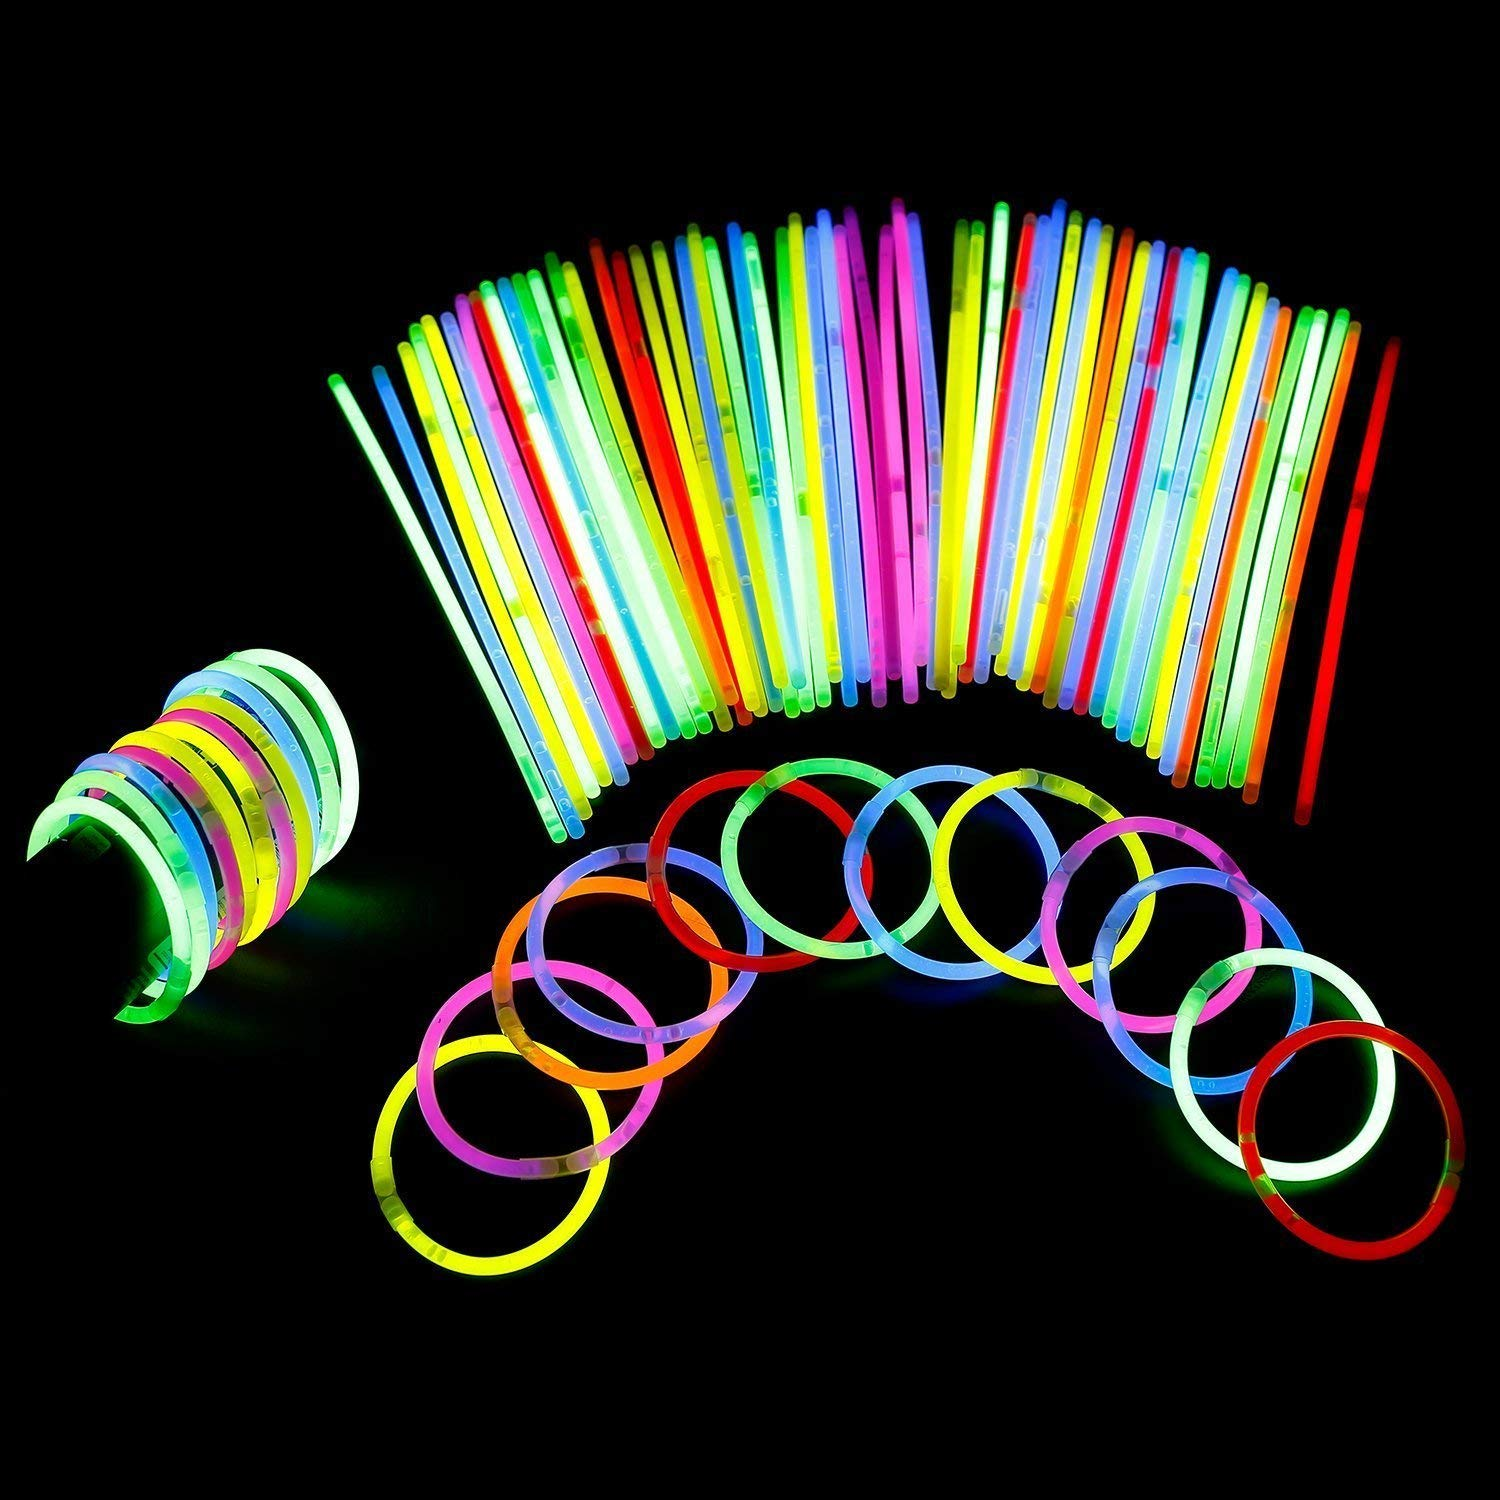 Lumistick 8 Inch 1000 Pack Glow Sticks - Bendable Glow Sticks with Necklace and Bracelet Connectors - Glowstick Bundle Party Bracelets Best for Parties, Events and Holidays (Assorted, 1000) by Lumistick (Image #7)